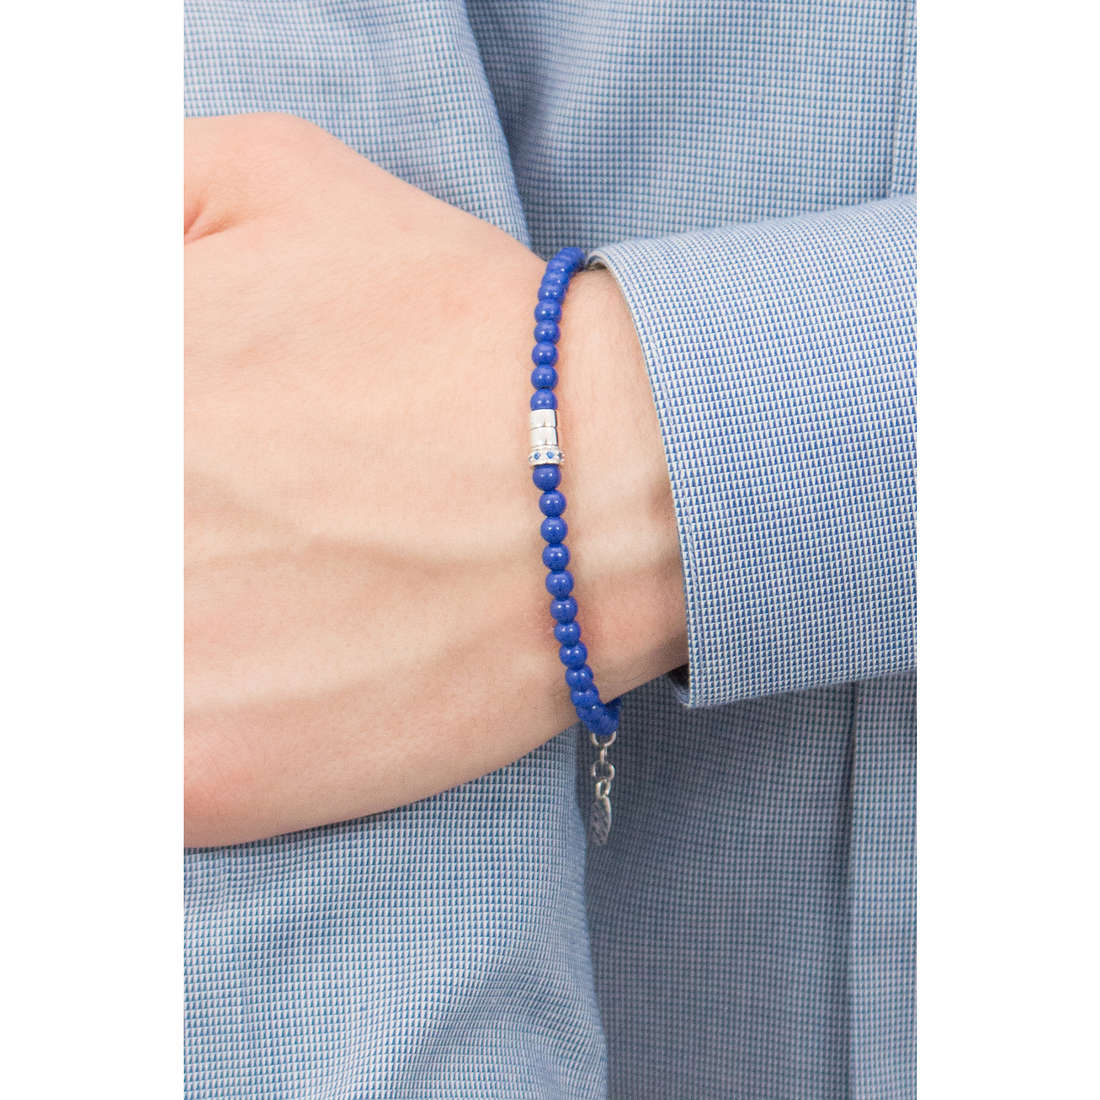 Comete bracelets Dandy man UBR 750 photo wearing